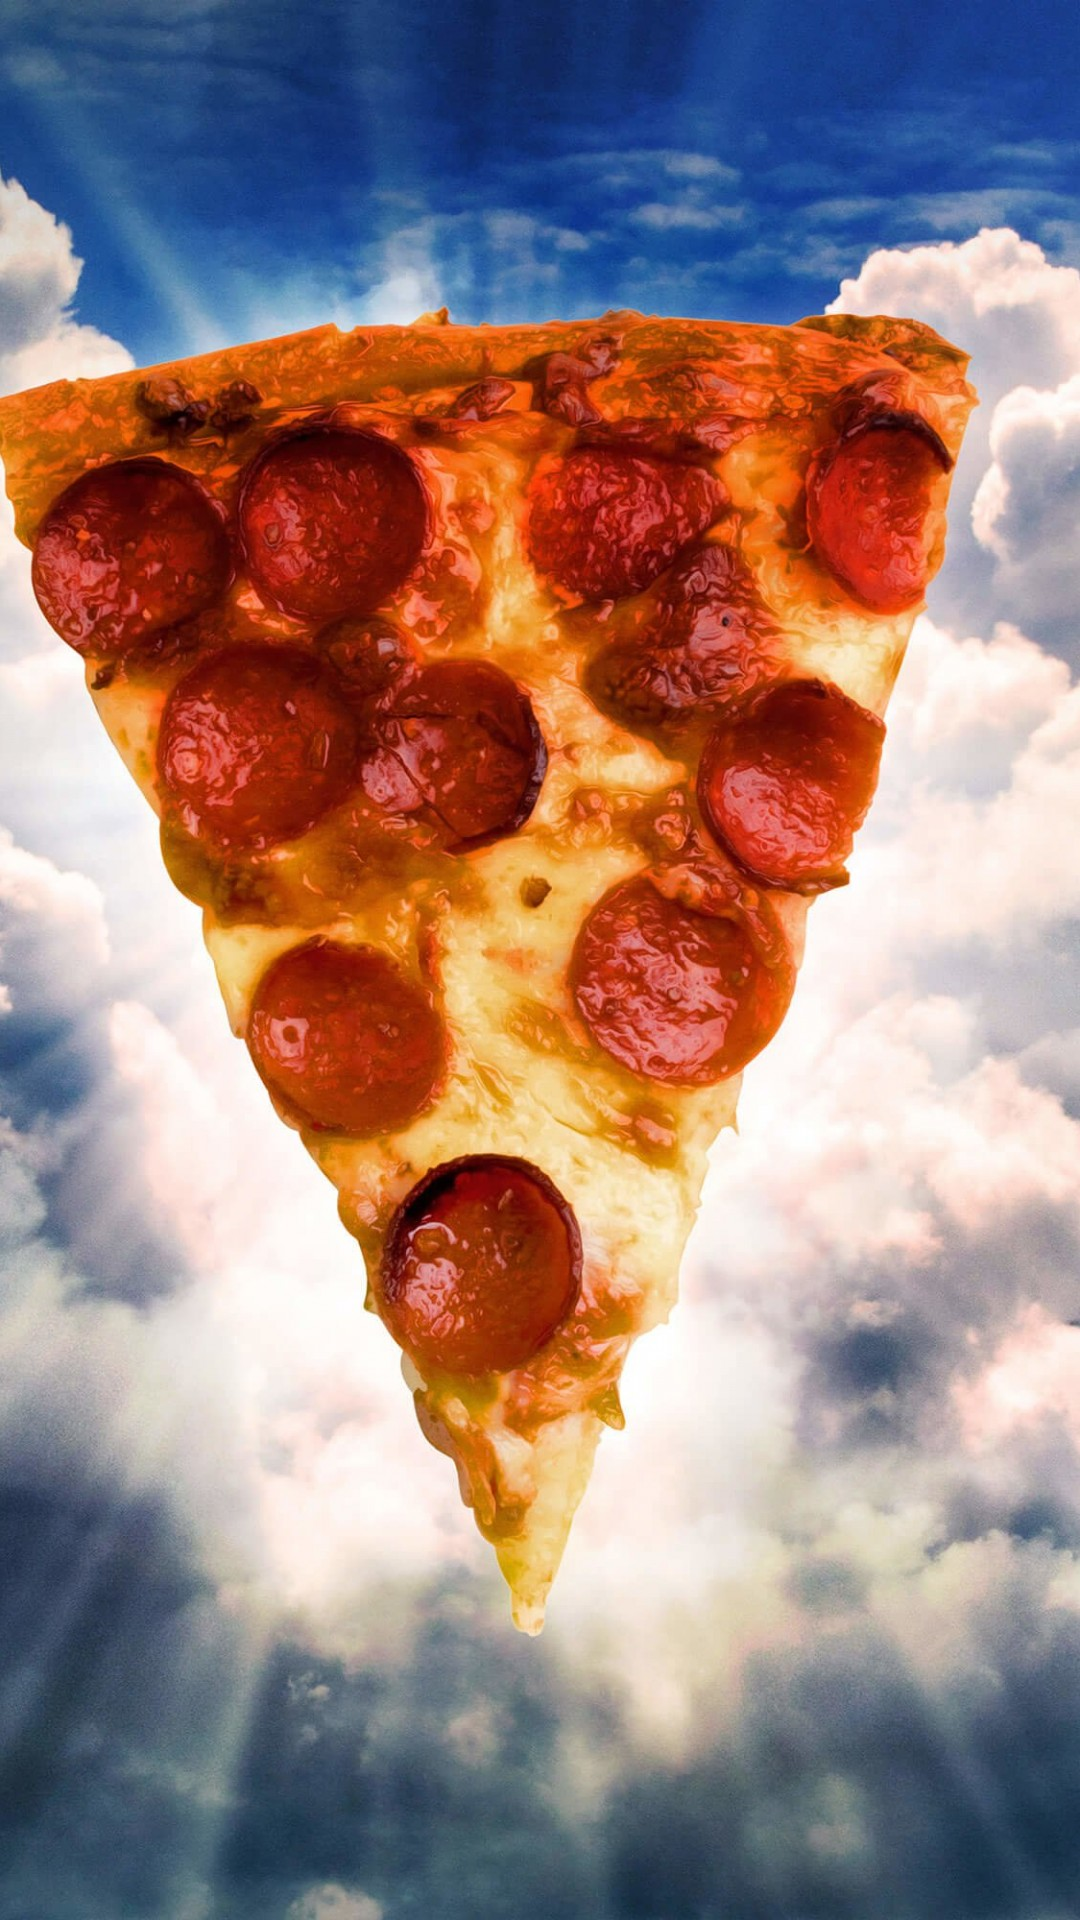 Holy Pizza Wallpaper for Motorola Moto X